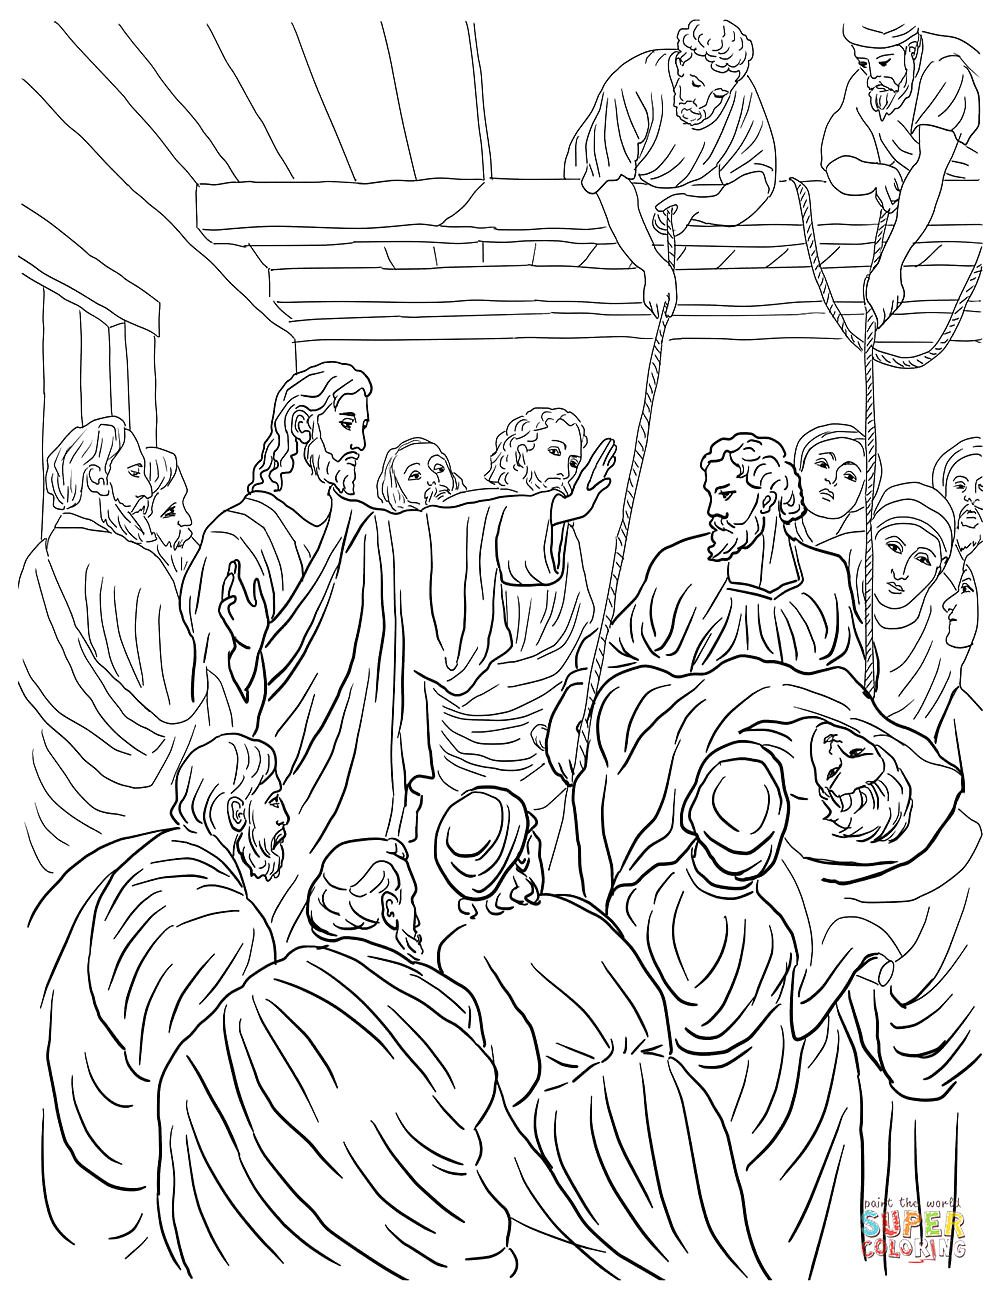 bible related coloring pages related image bible coloring pages coloring pages coloring pages related bible